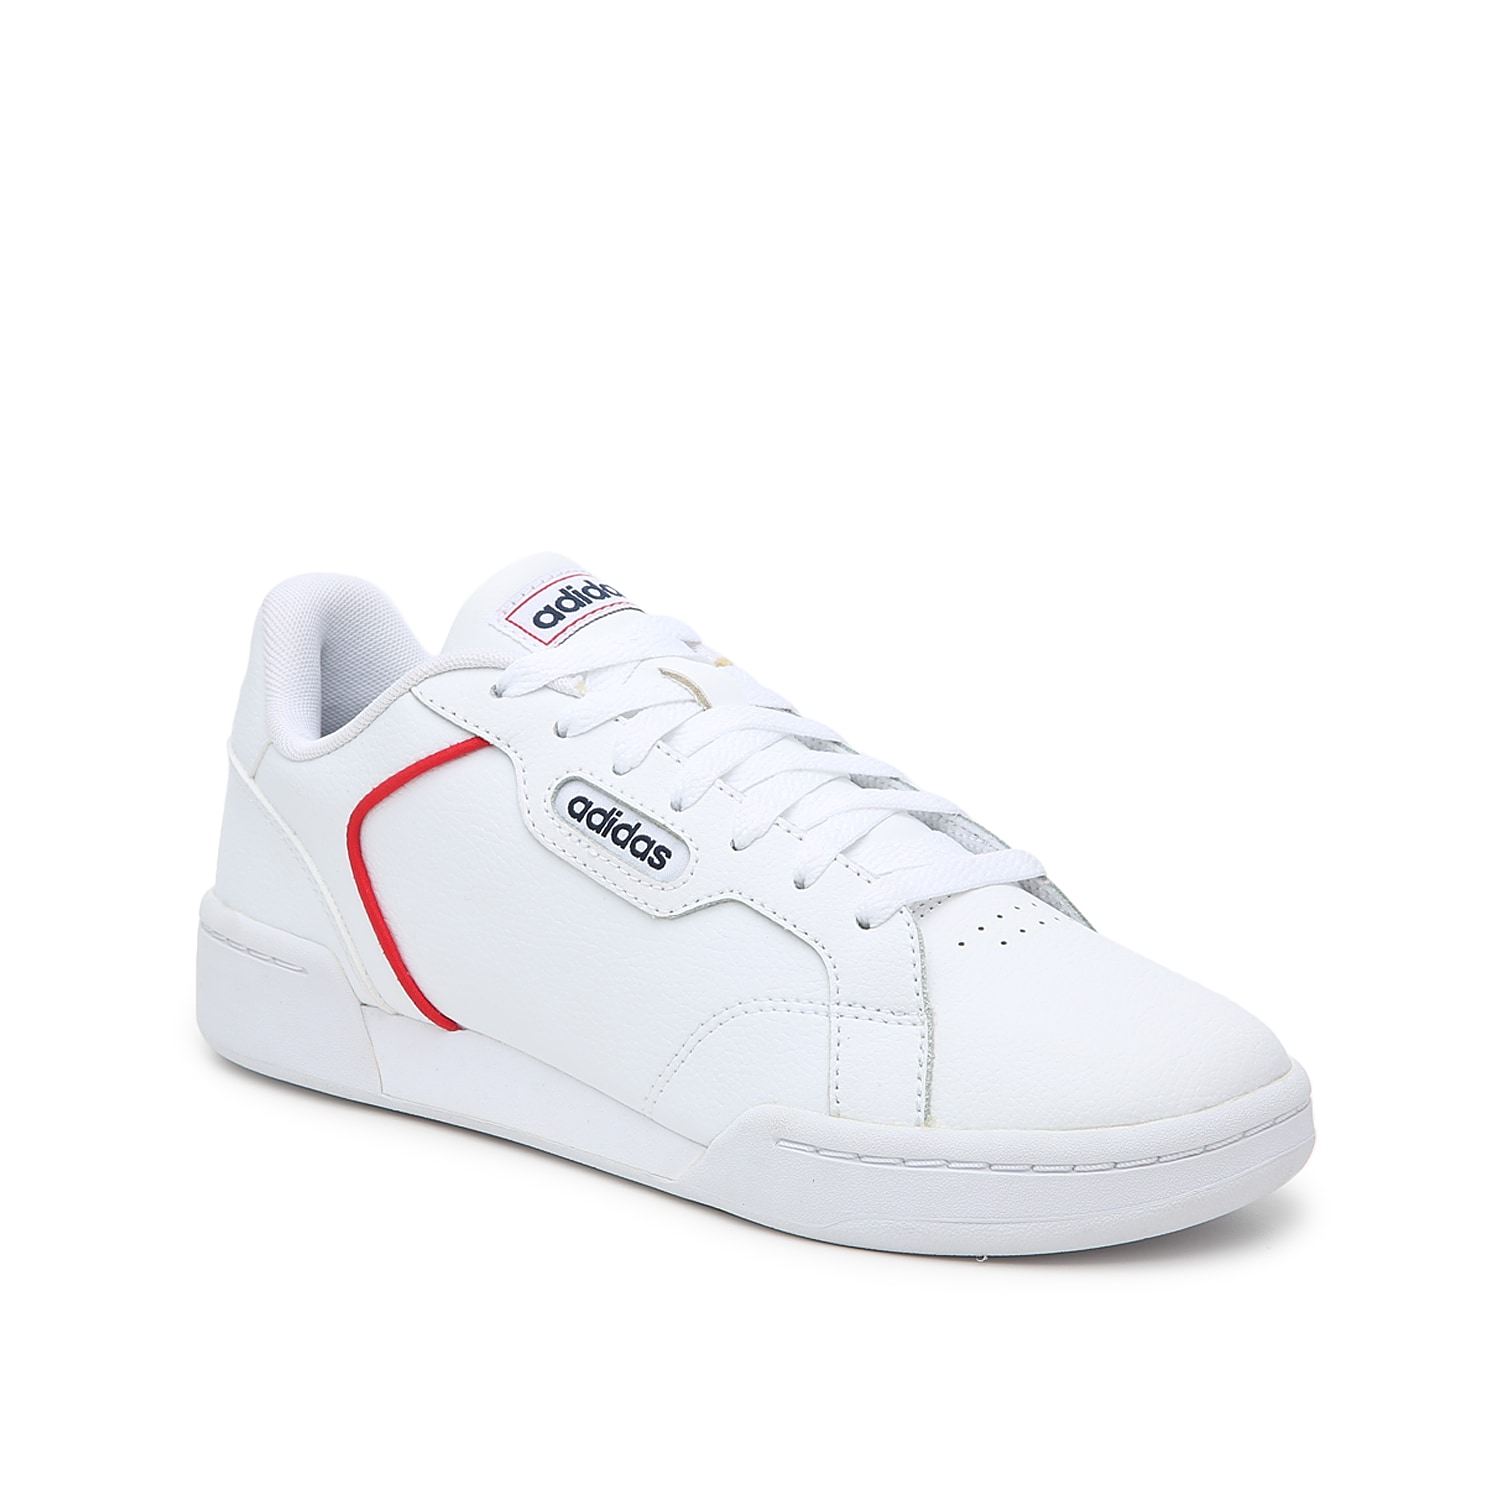 The women\\\'s Roguera sneaker from adidas rocks a retro design with modern comfort. A padded collar, plush footbed, and EVA midsole cushions every step.